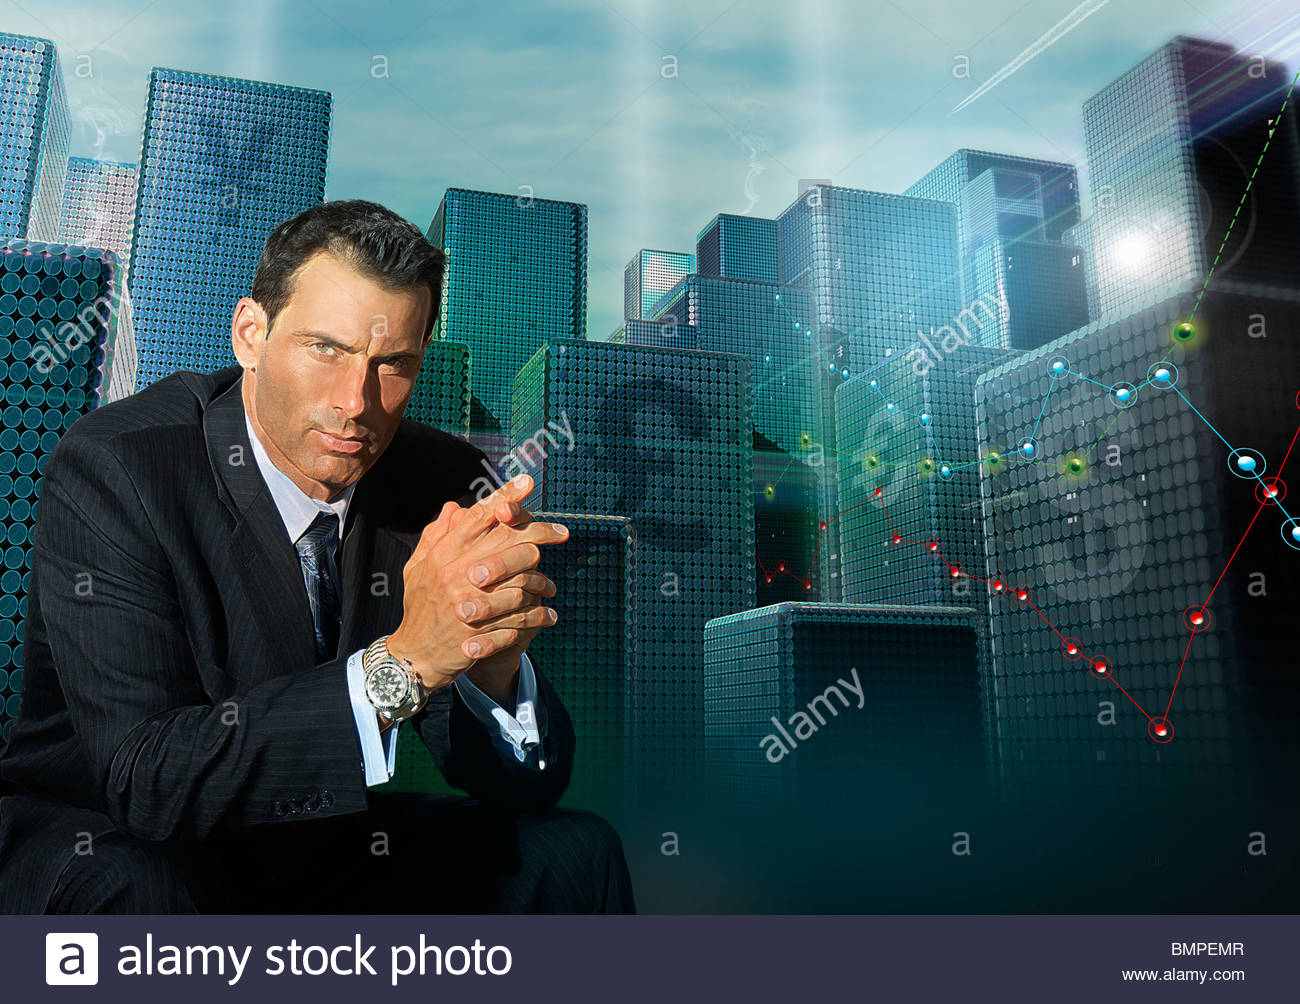 Money symbols on highrise buildings behind businessman - Stock Image